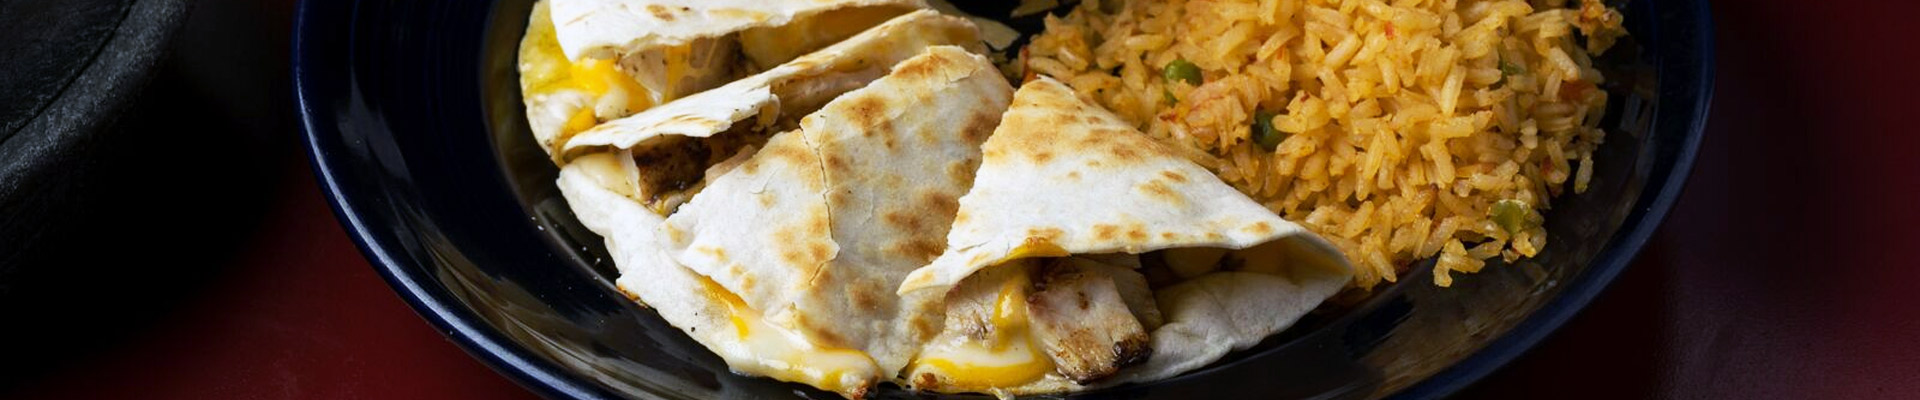 We have different types of fajitas in our menu every day